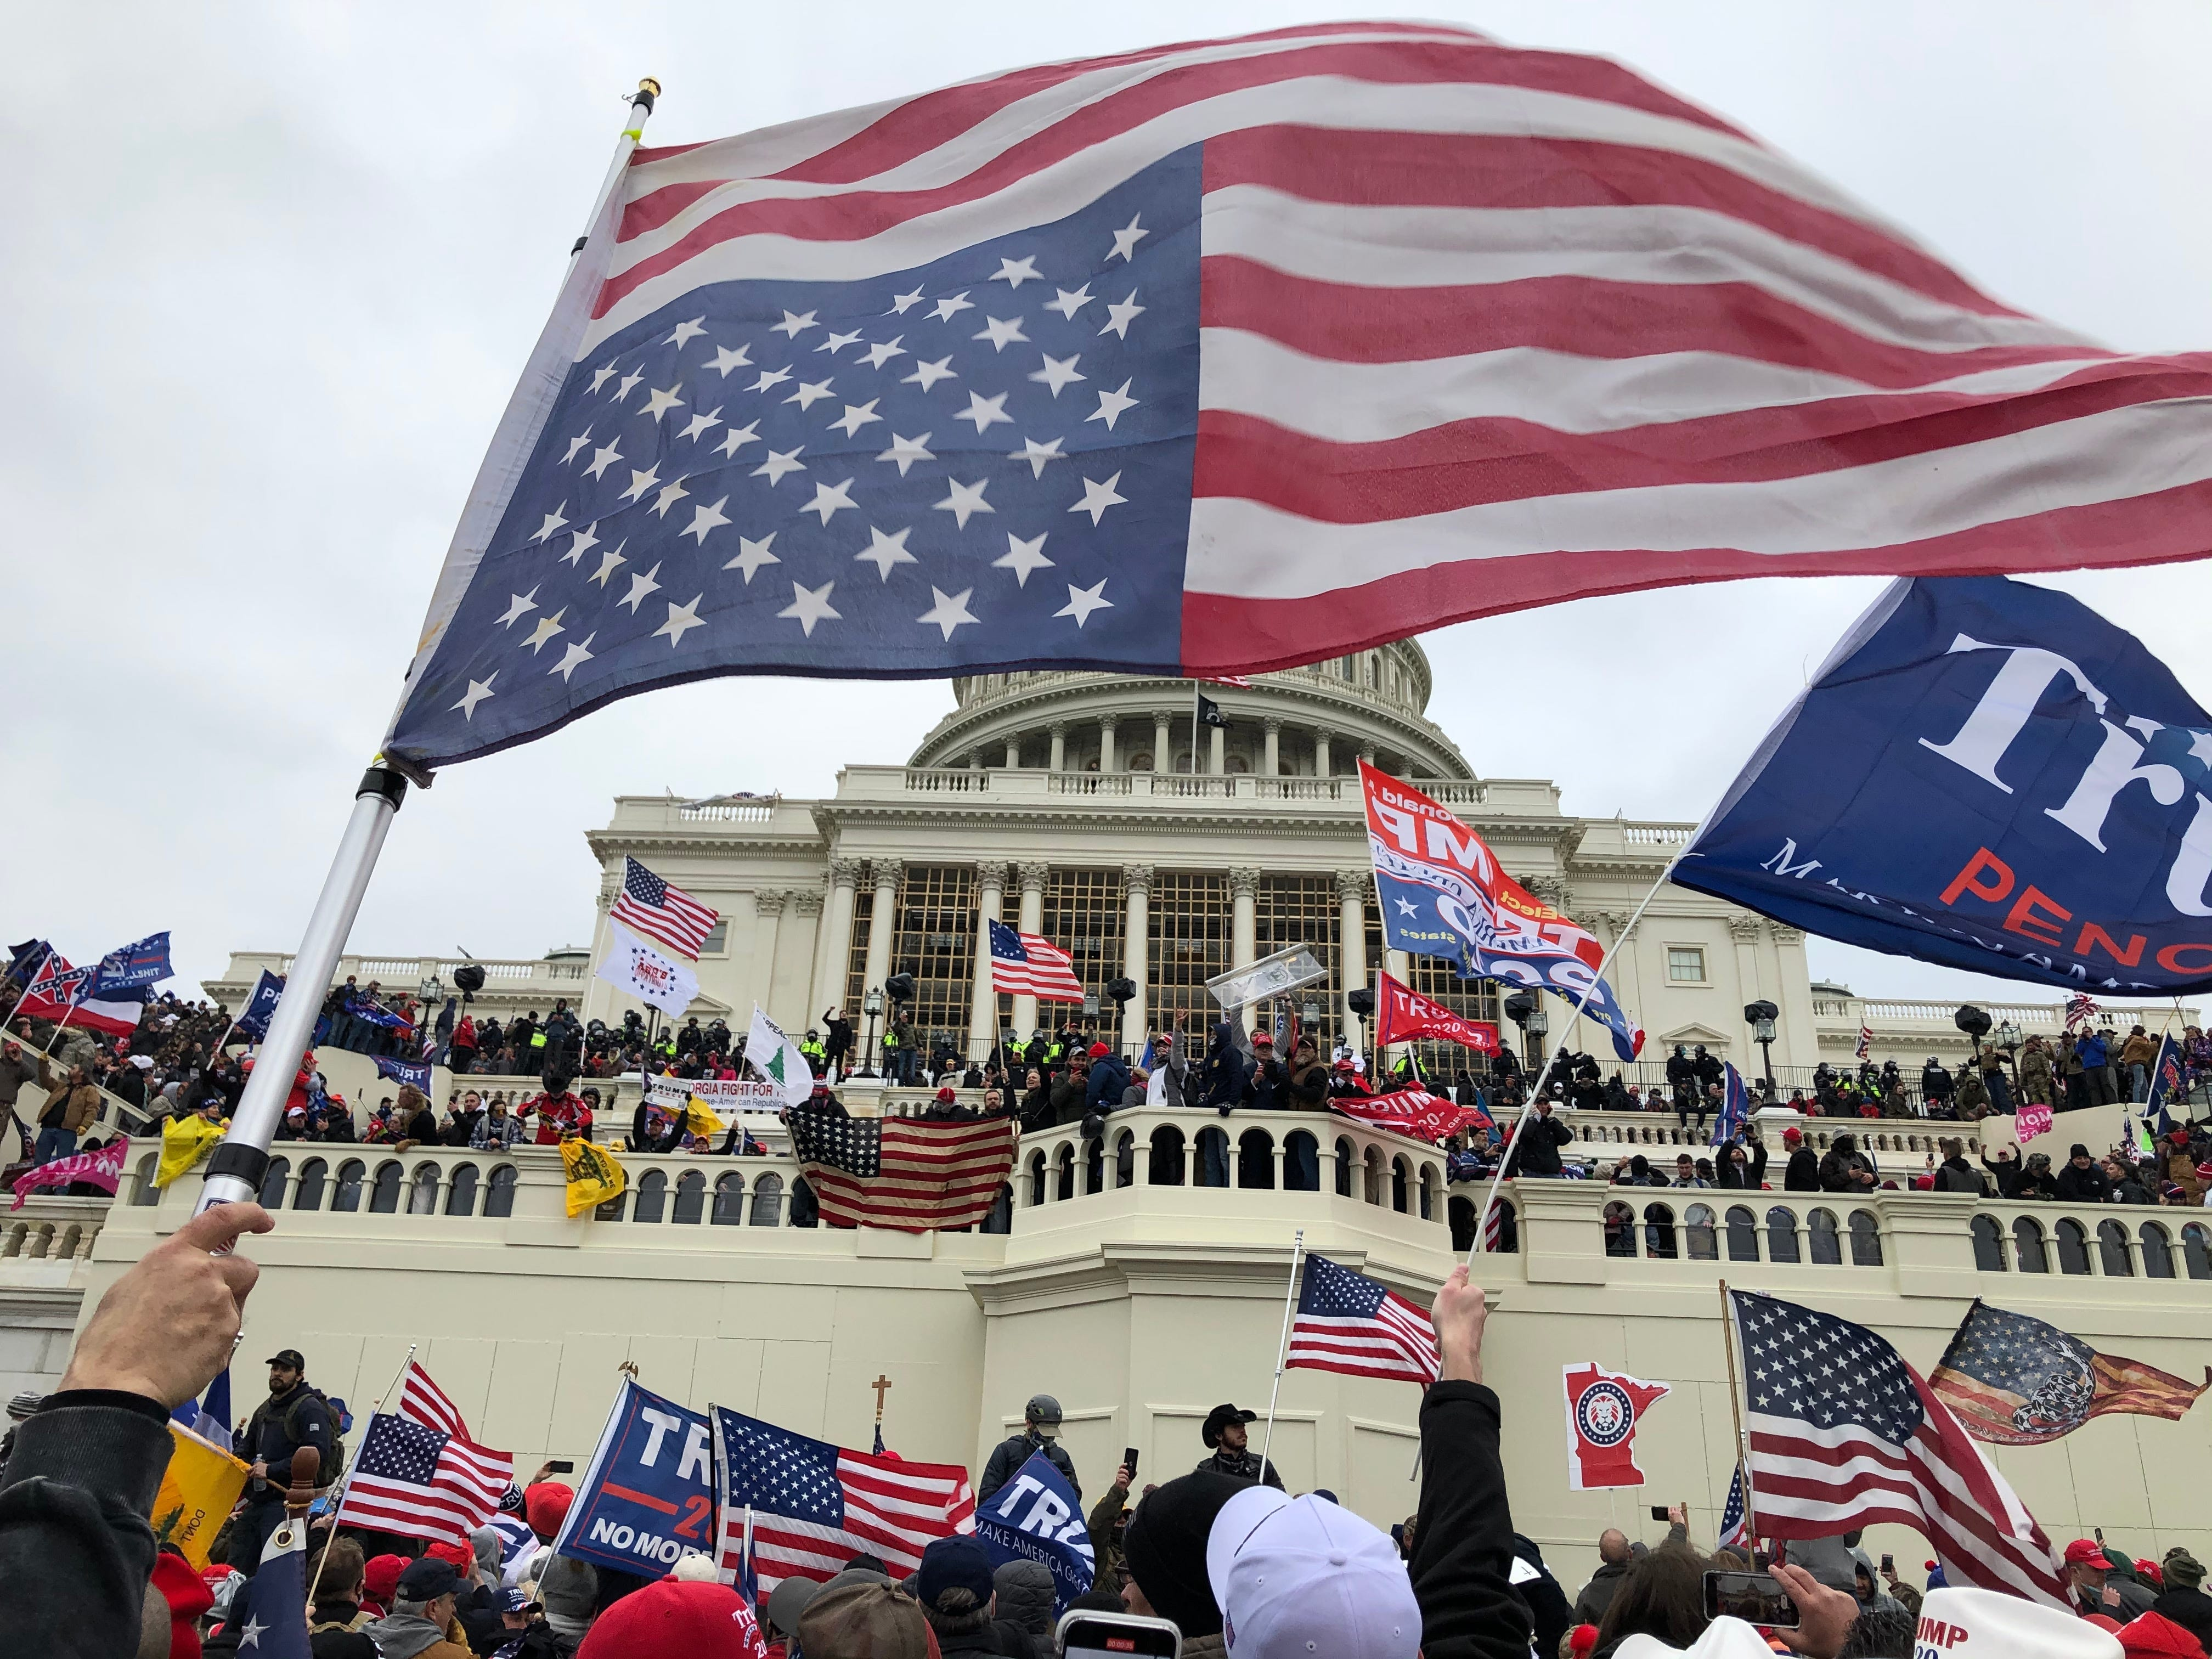 Rioters stand on the West front of the U.S. Capitol building to protest the official election of then-President-elect Joe Biden on Jan 6, 2020.